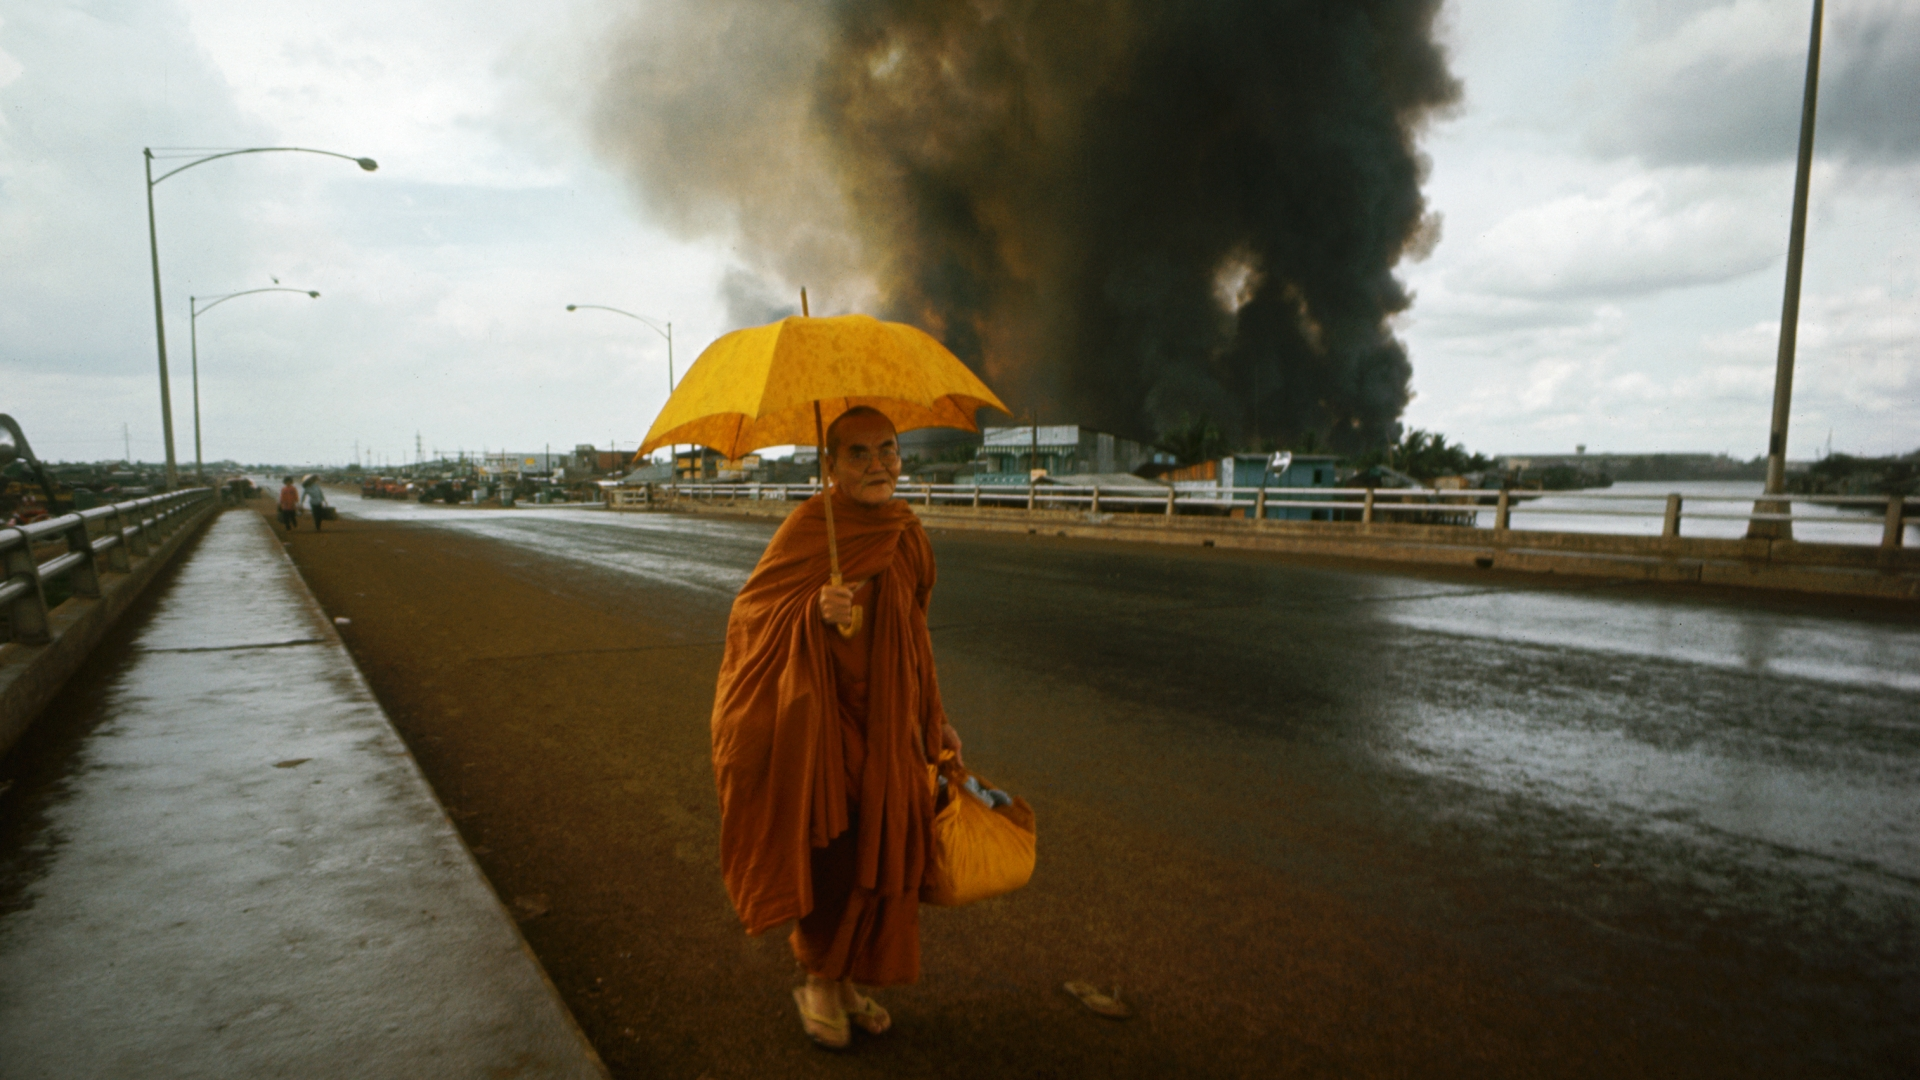 Fires burn behind a Buddhist monk crossing a bridge on the first day of the Tet Offensive. (Credit: Tim Page/CORBIS/Getty Images)